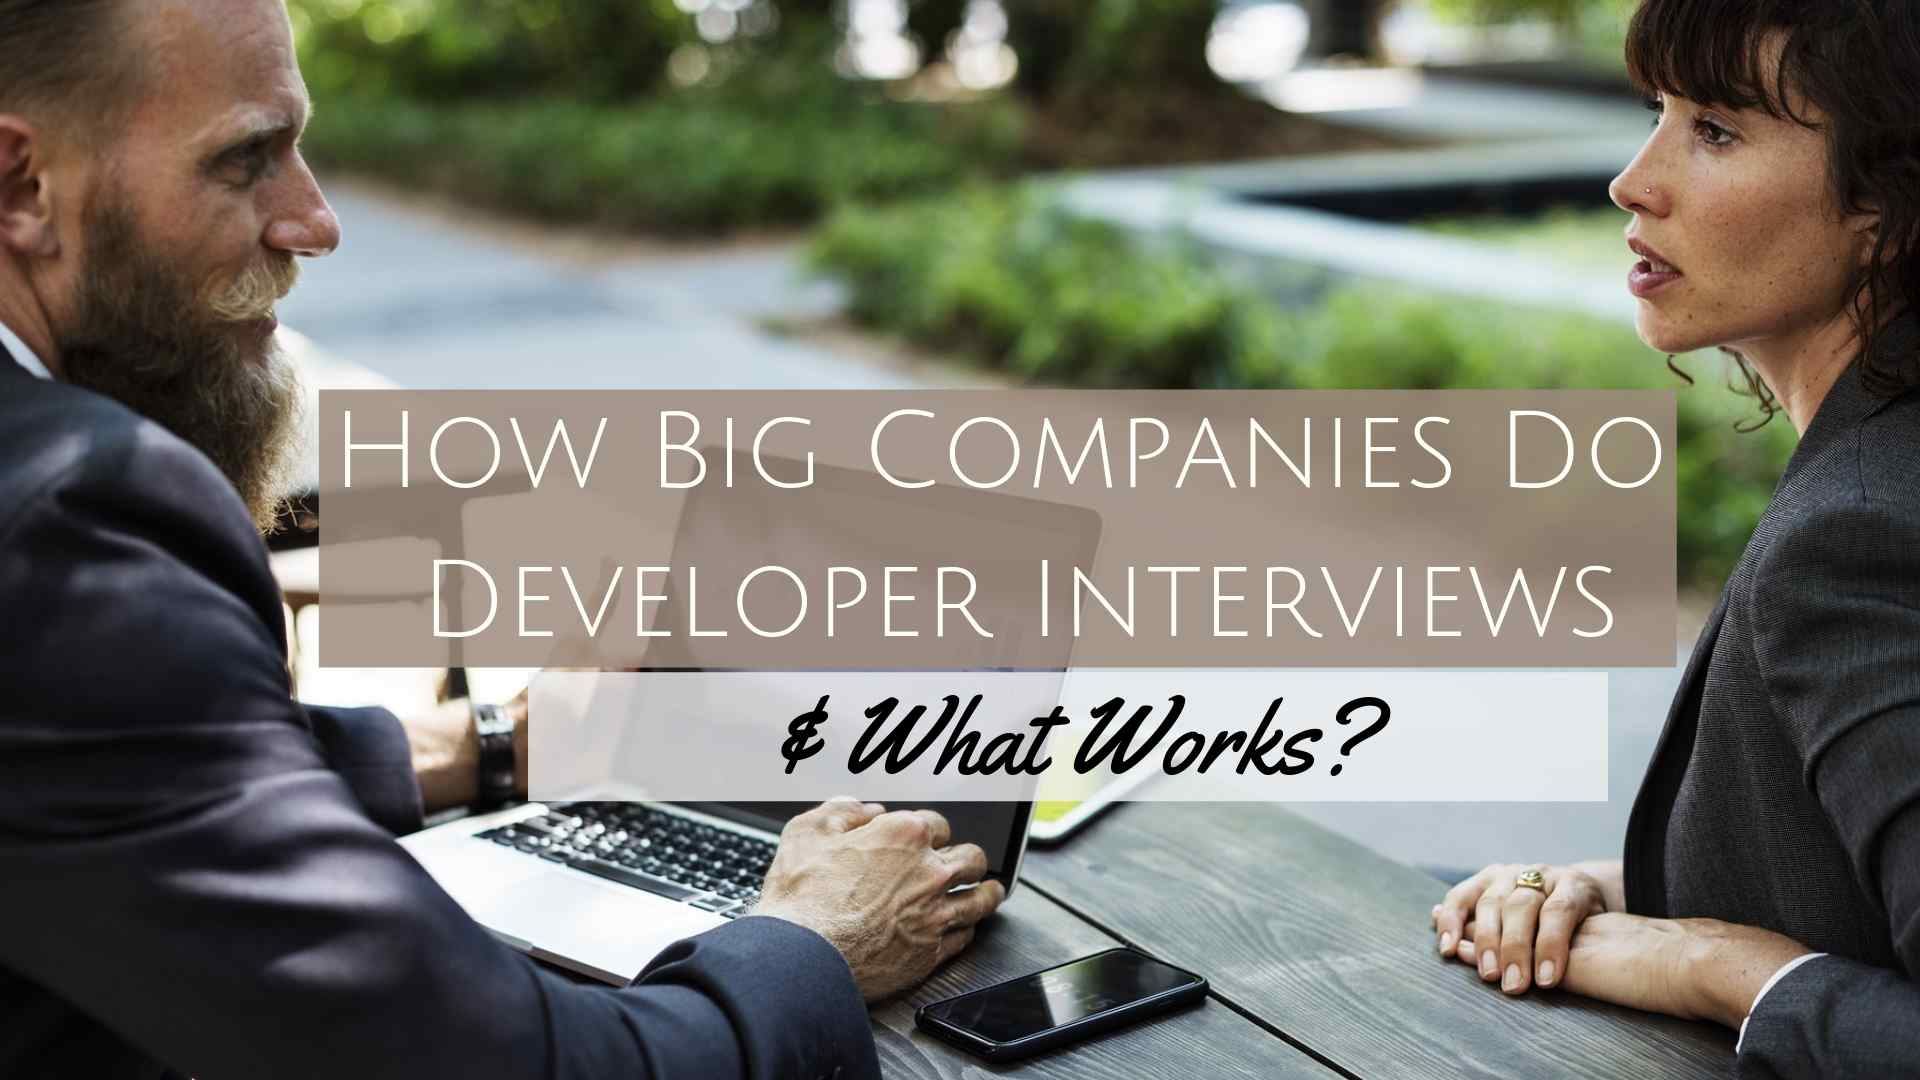 How Big Companies Do Developer Interviews & What Works?